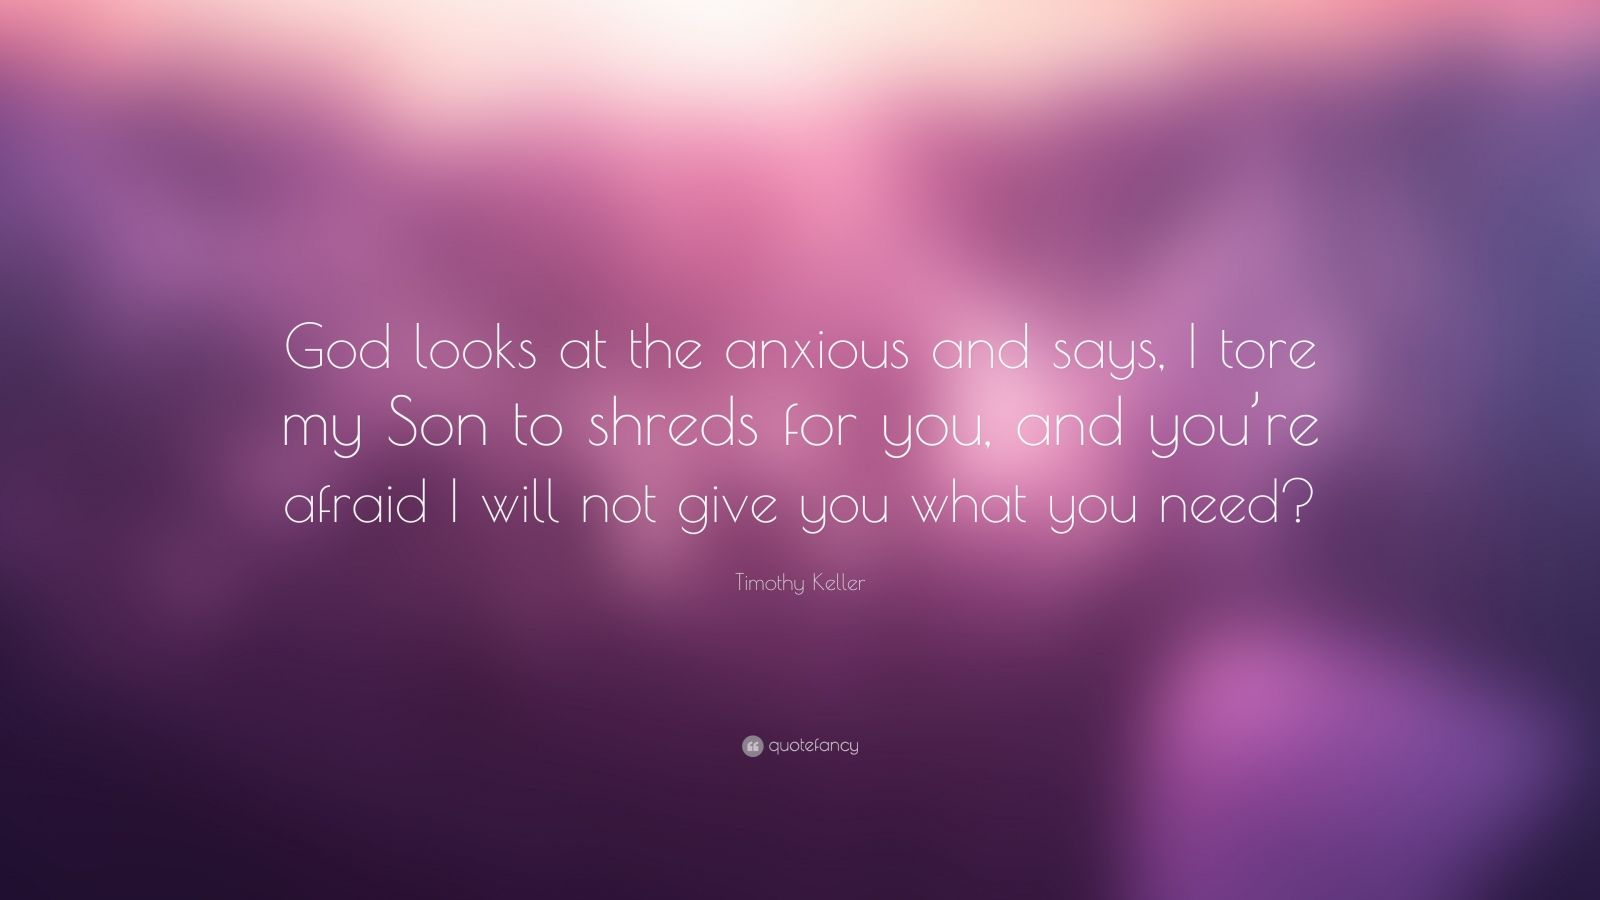 "Timothy Keller Quote: ""God looks at the anxious and says, I tore my Son to shreds for you, and you're afraid I will not give you what you need?"""